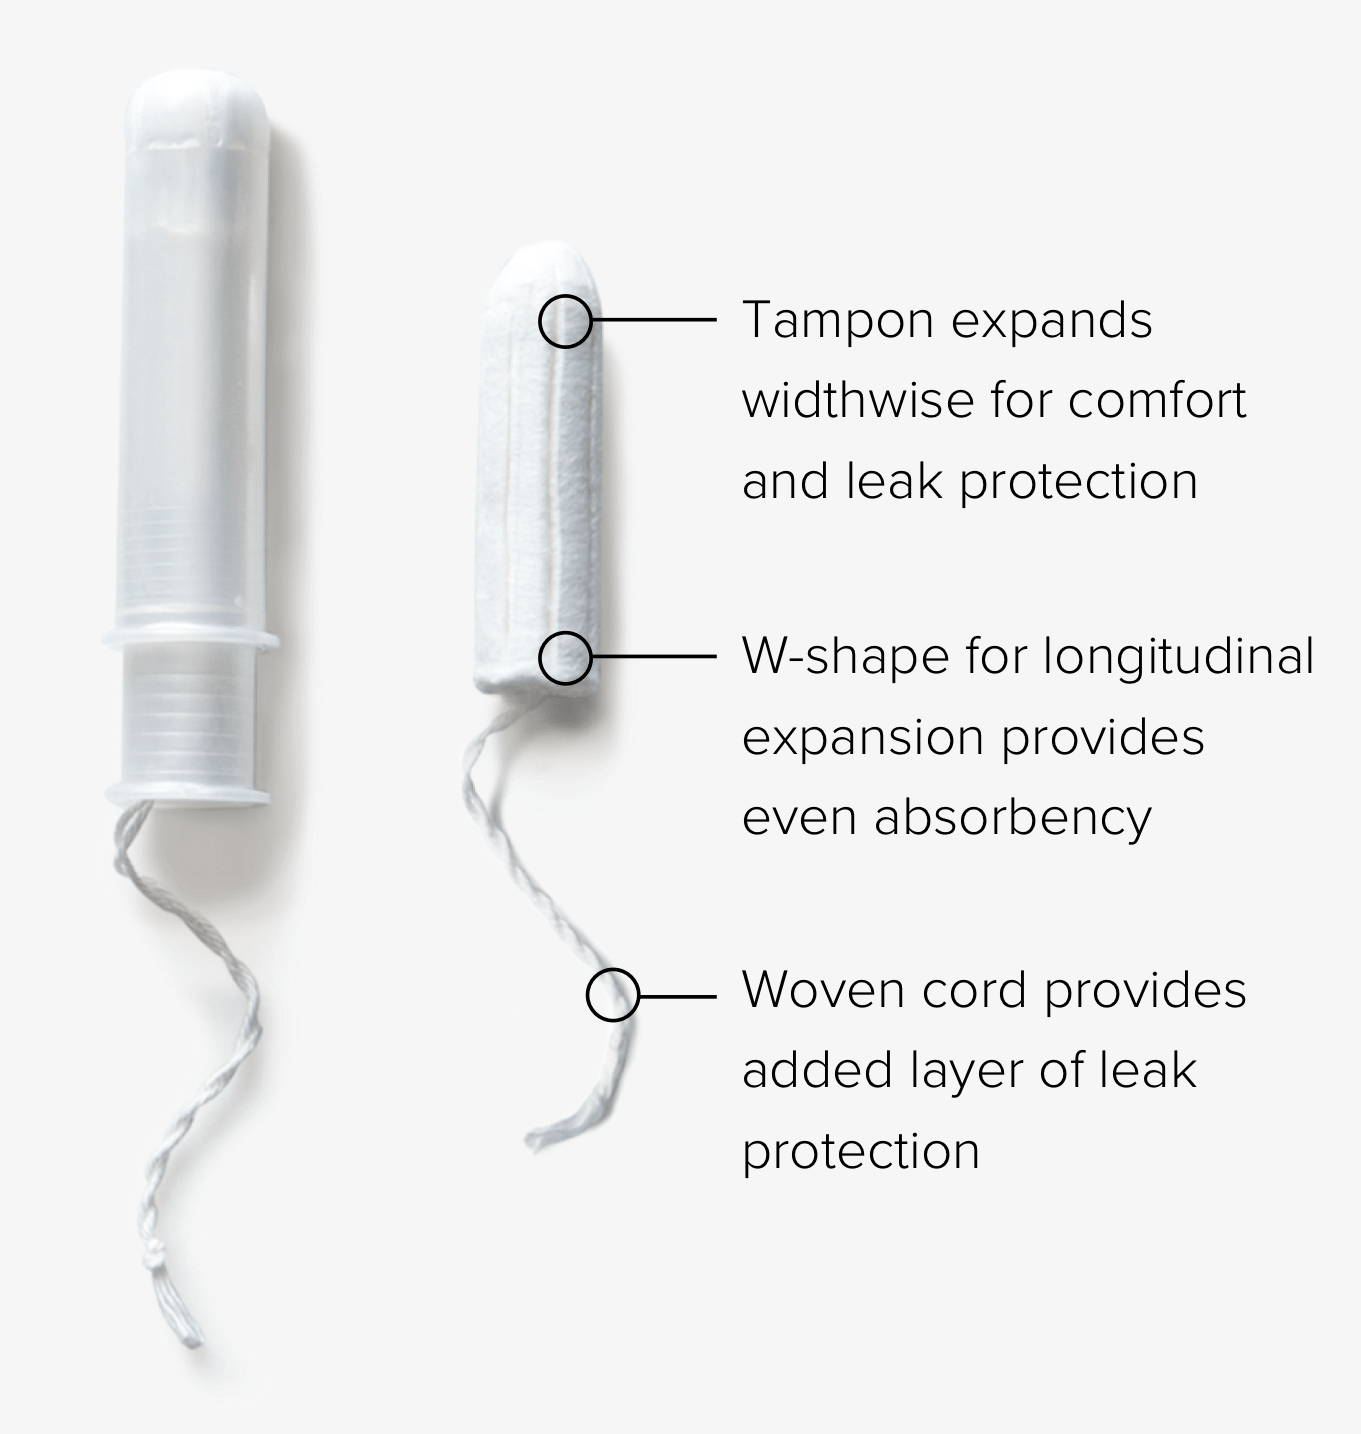 Two organic applicator tampons. One contained in the plastic applicator and one outside of the applicator.